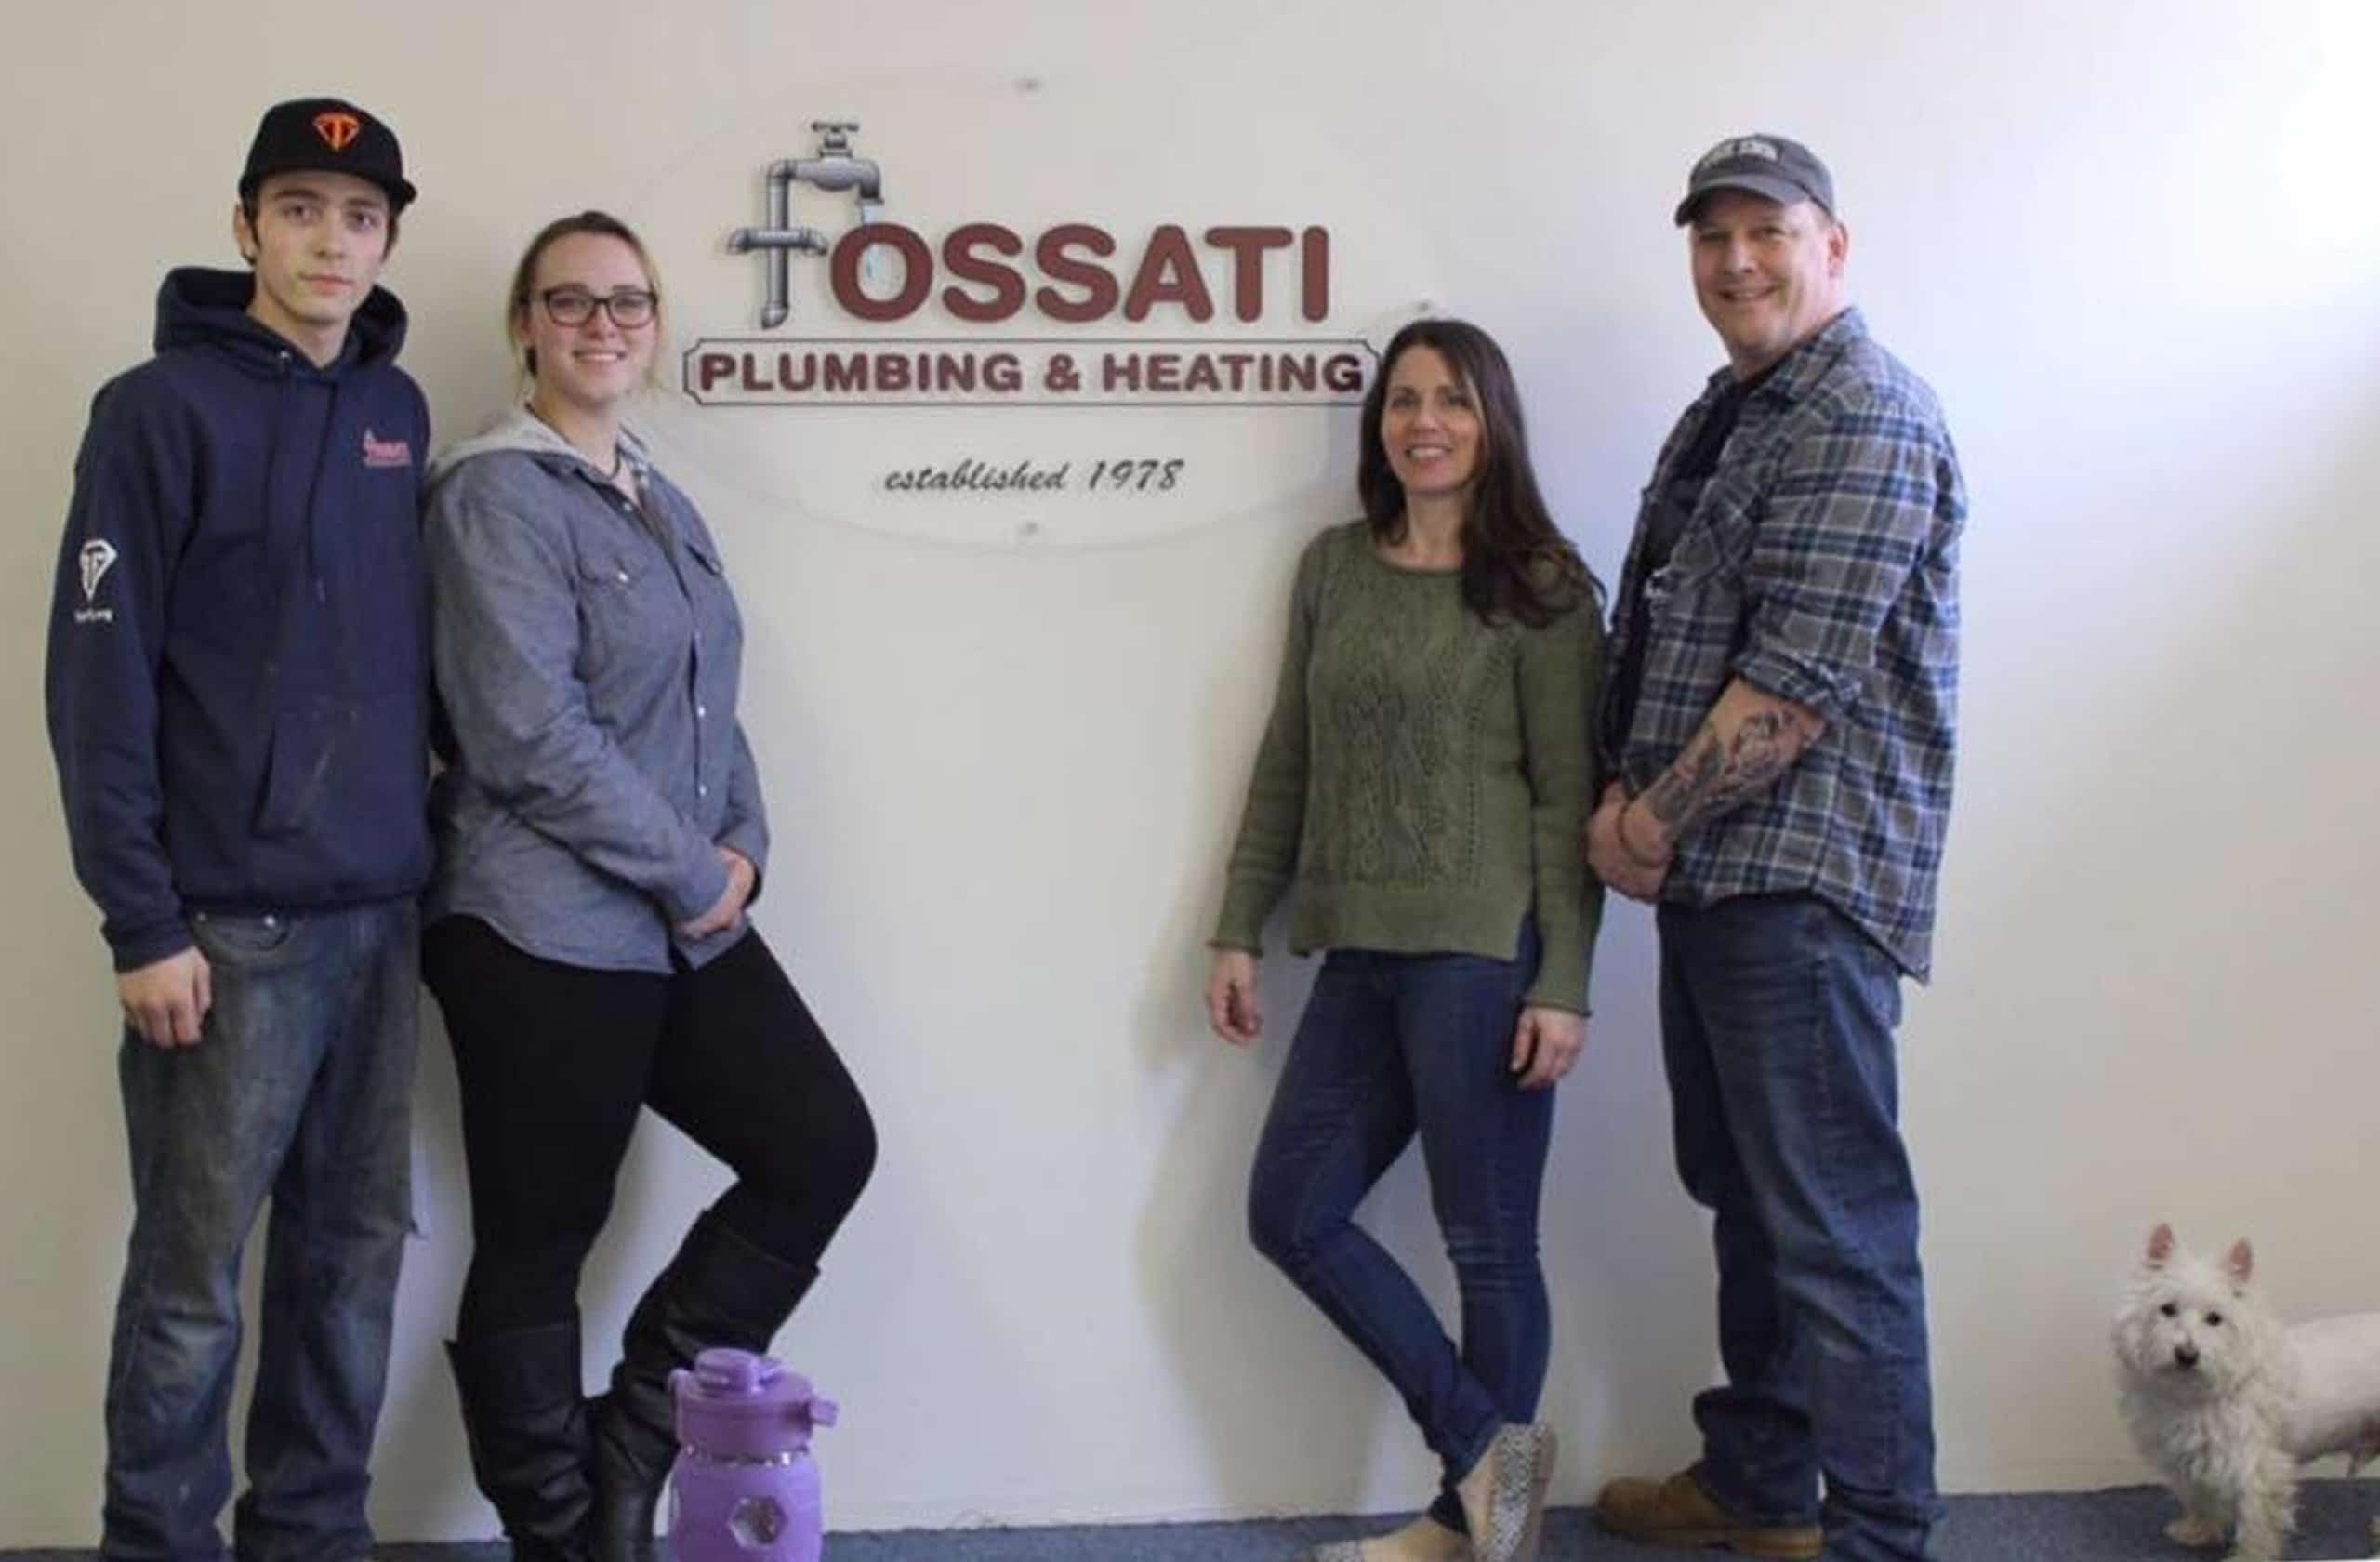 fossati-plumbing-family-business